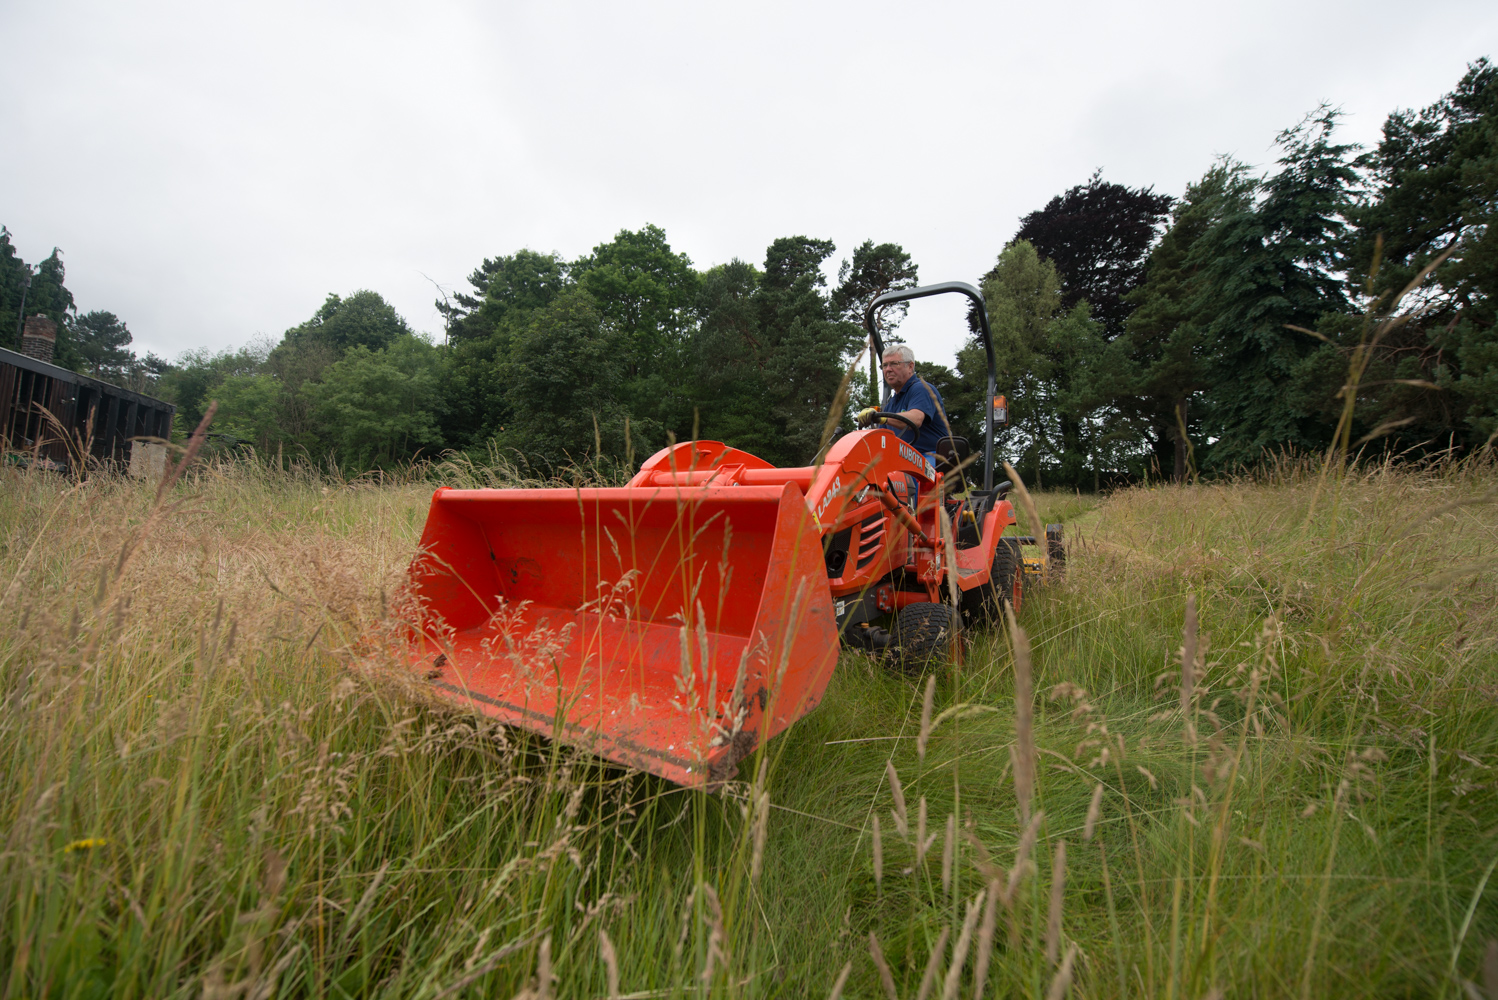 Mowing field bristol